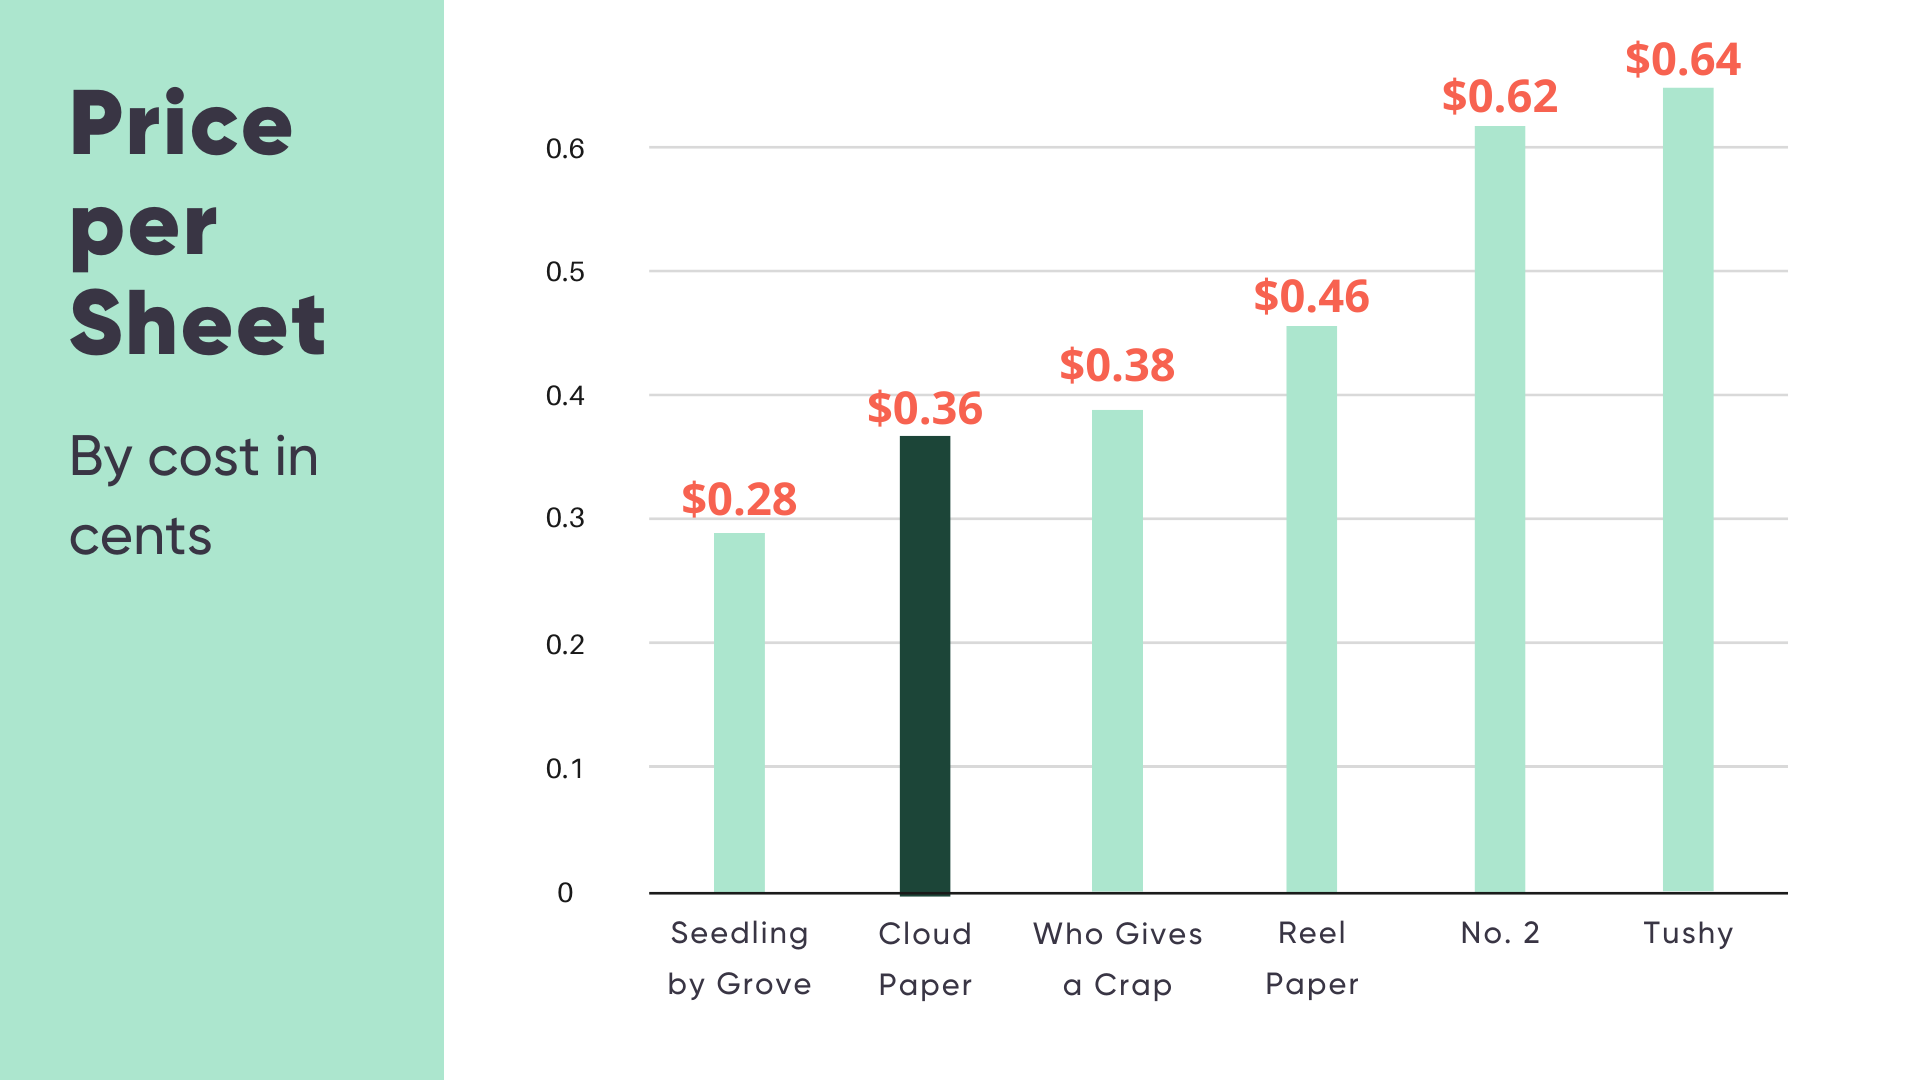 cheapest bamboo toilet paper price comparison - - Cloud Paper, Reel Paper, Who Gives a Crap, Seedling by Grove,  Tushy, No.2